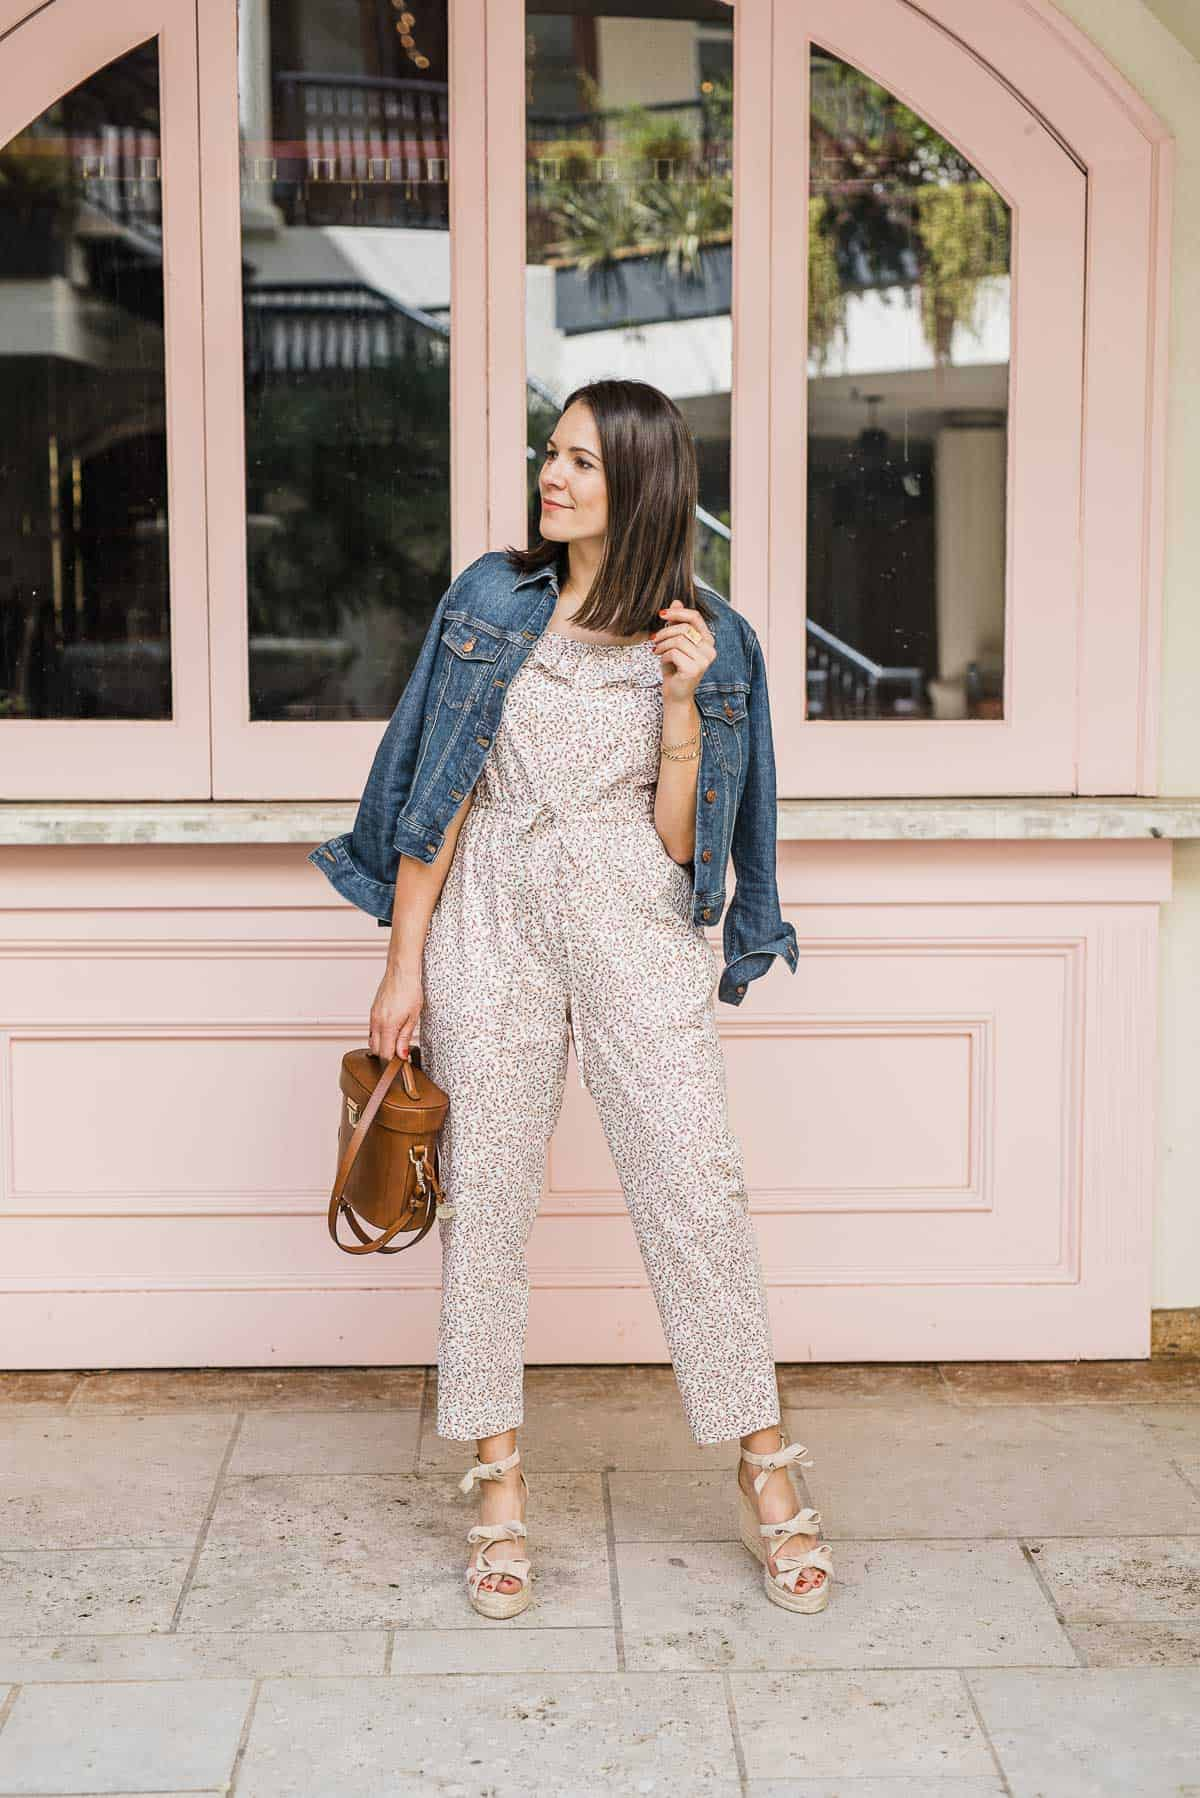 "MY STYLE VITA""S OUTFIT DETAILS: GAL MEETS GLAM COLLECTION 'RUE' JUMPSUIT • CASTANER WEDGES • BRAHMIN BAG • MADEWELL DENIM JACKET"